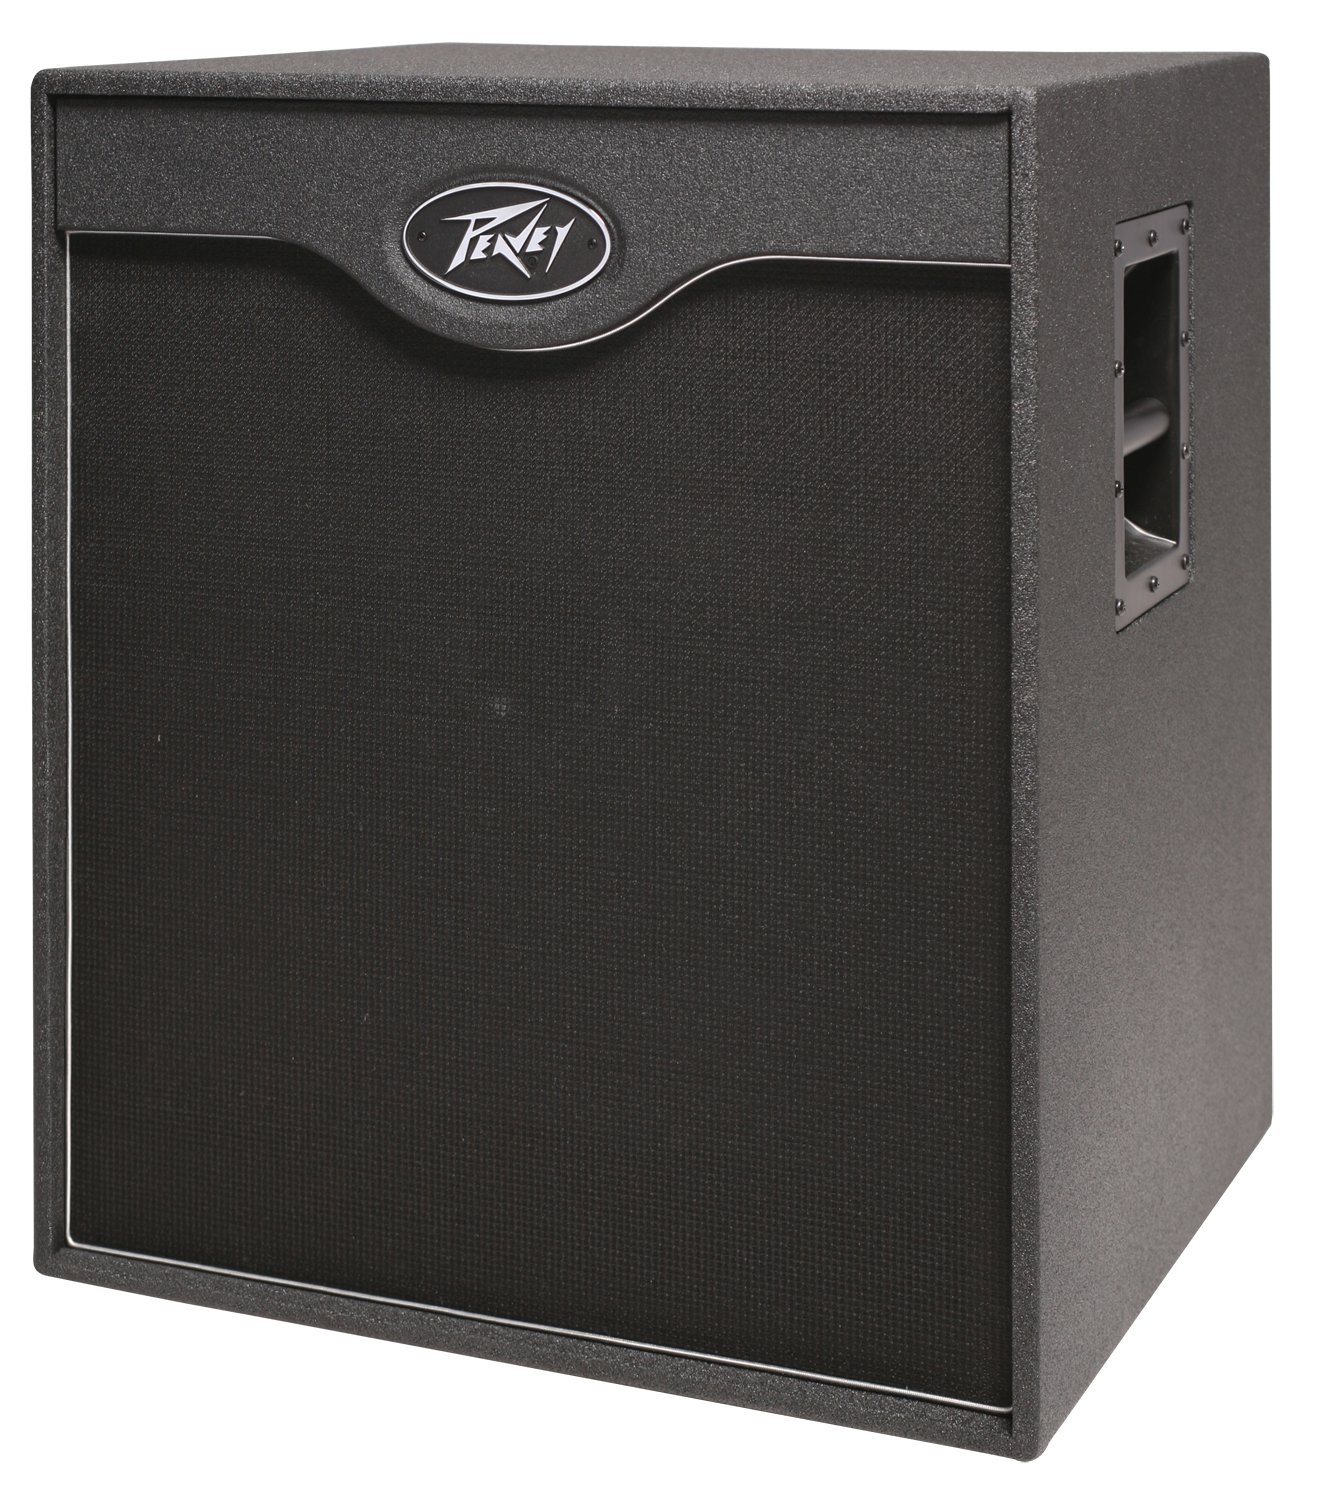 The VB 410 Bass Cabinet showcases Peavey's specially designed custom 4x10'' ceramic-magnetic loud speakers along with a 1'' dynamic horn tweeter with level control. The VB 410 also can handle up to 800 watts of program power and 1600 watts peak. With t...